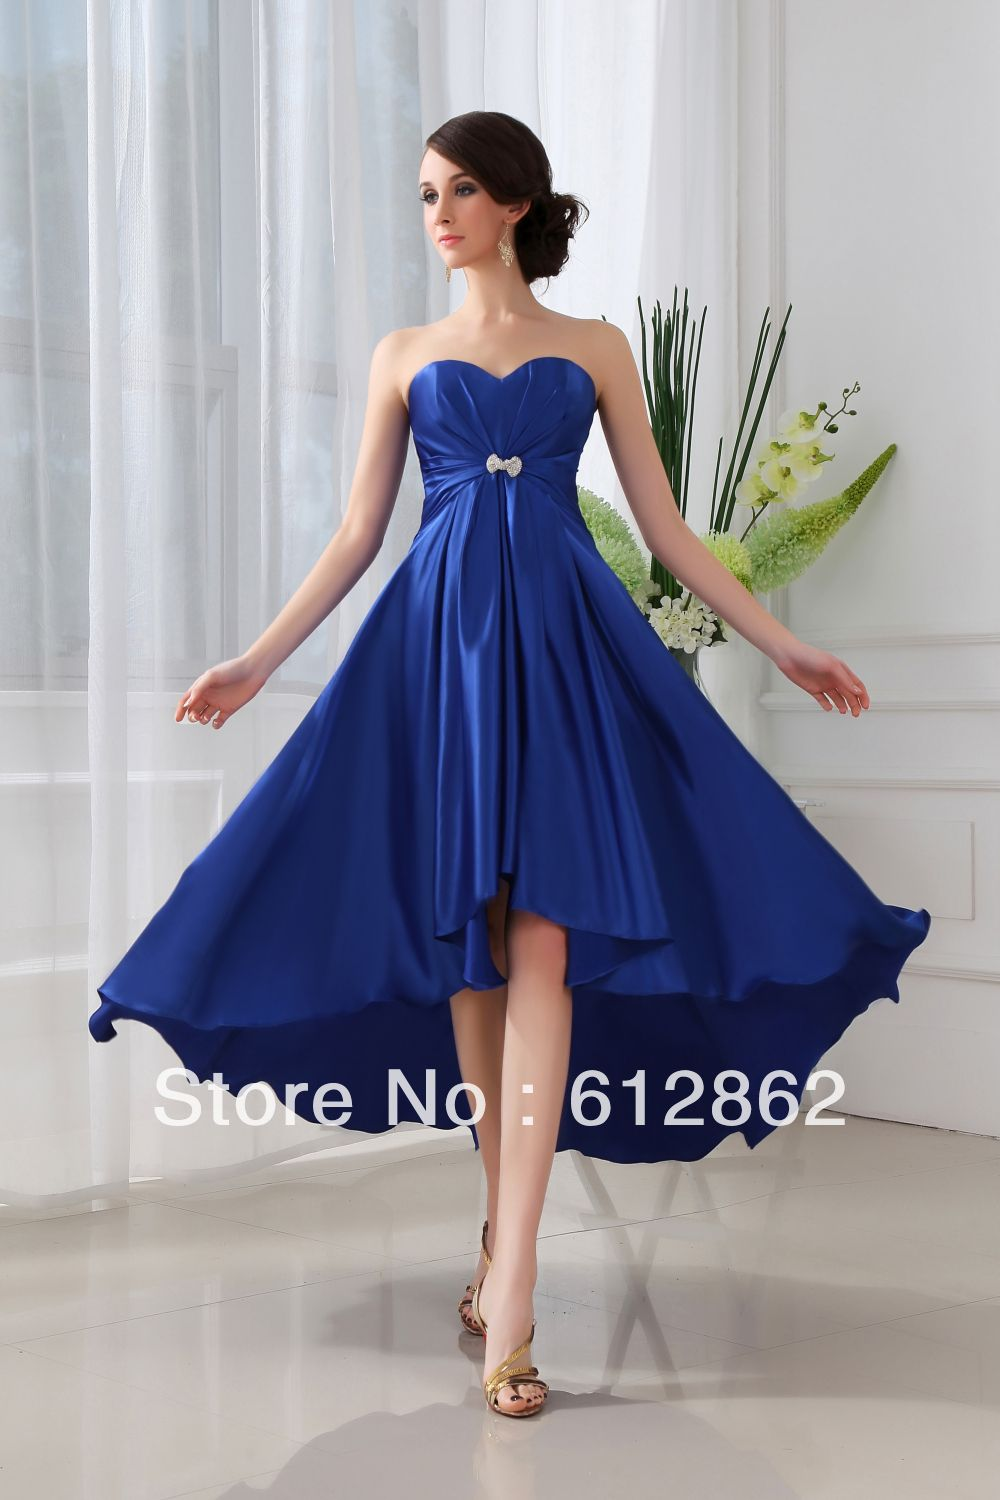 Royal blue short wedding dresses displaying 17 images for Short blue wedding dresses